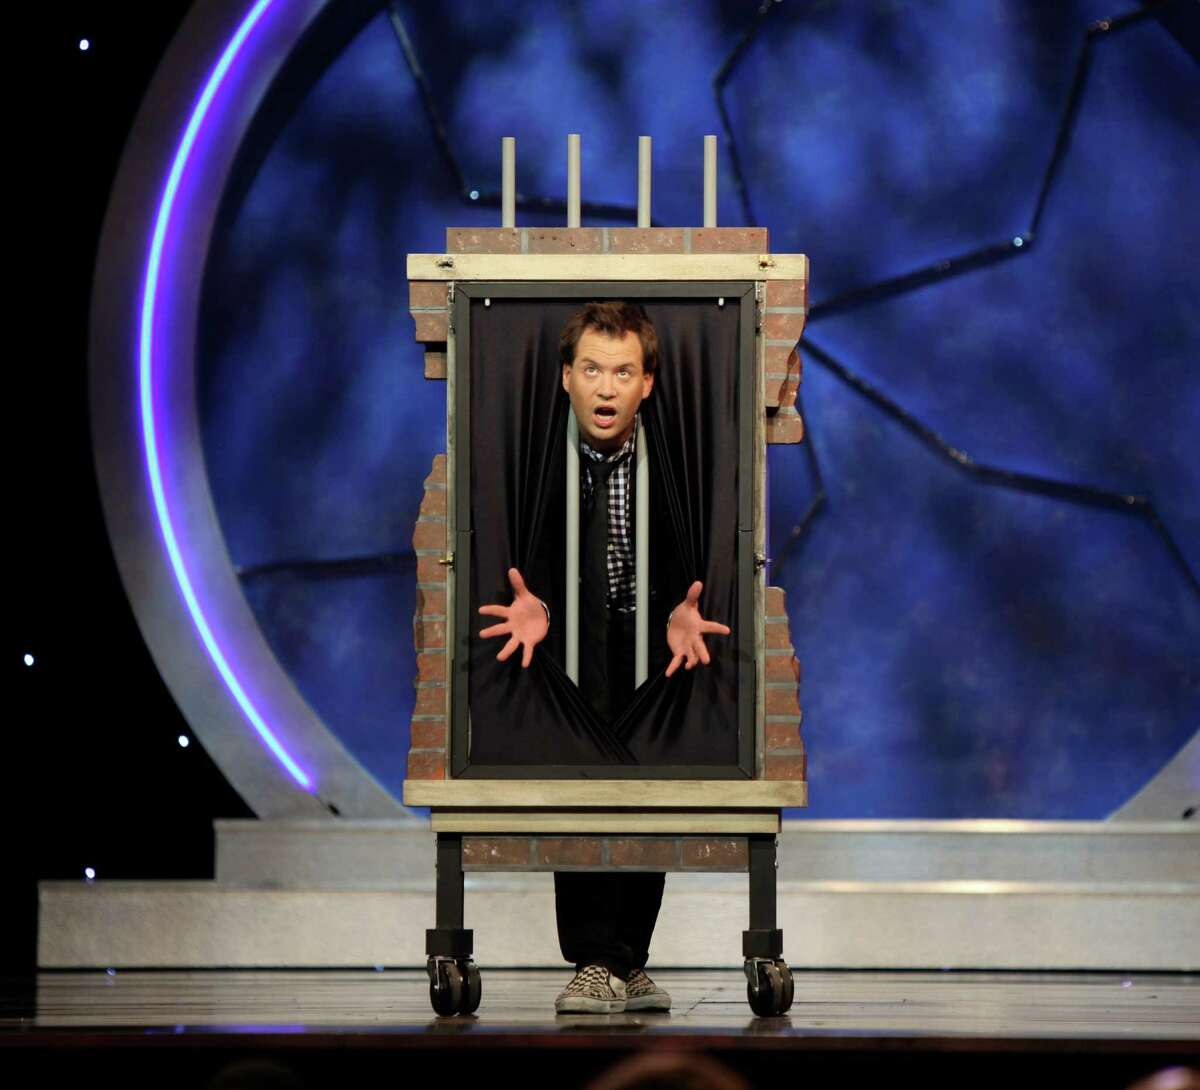 Farrell Dillon is among the performers in the Masters of Illusion Live! show, which comes to Stamford, Conn., on Thursday, Feb. 6, 2014, at the Palace Theatre. Dillon, who is a magician, also offers up plenty of comedy in his routine. For information on tickets, visit www.scalive.org.